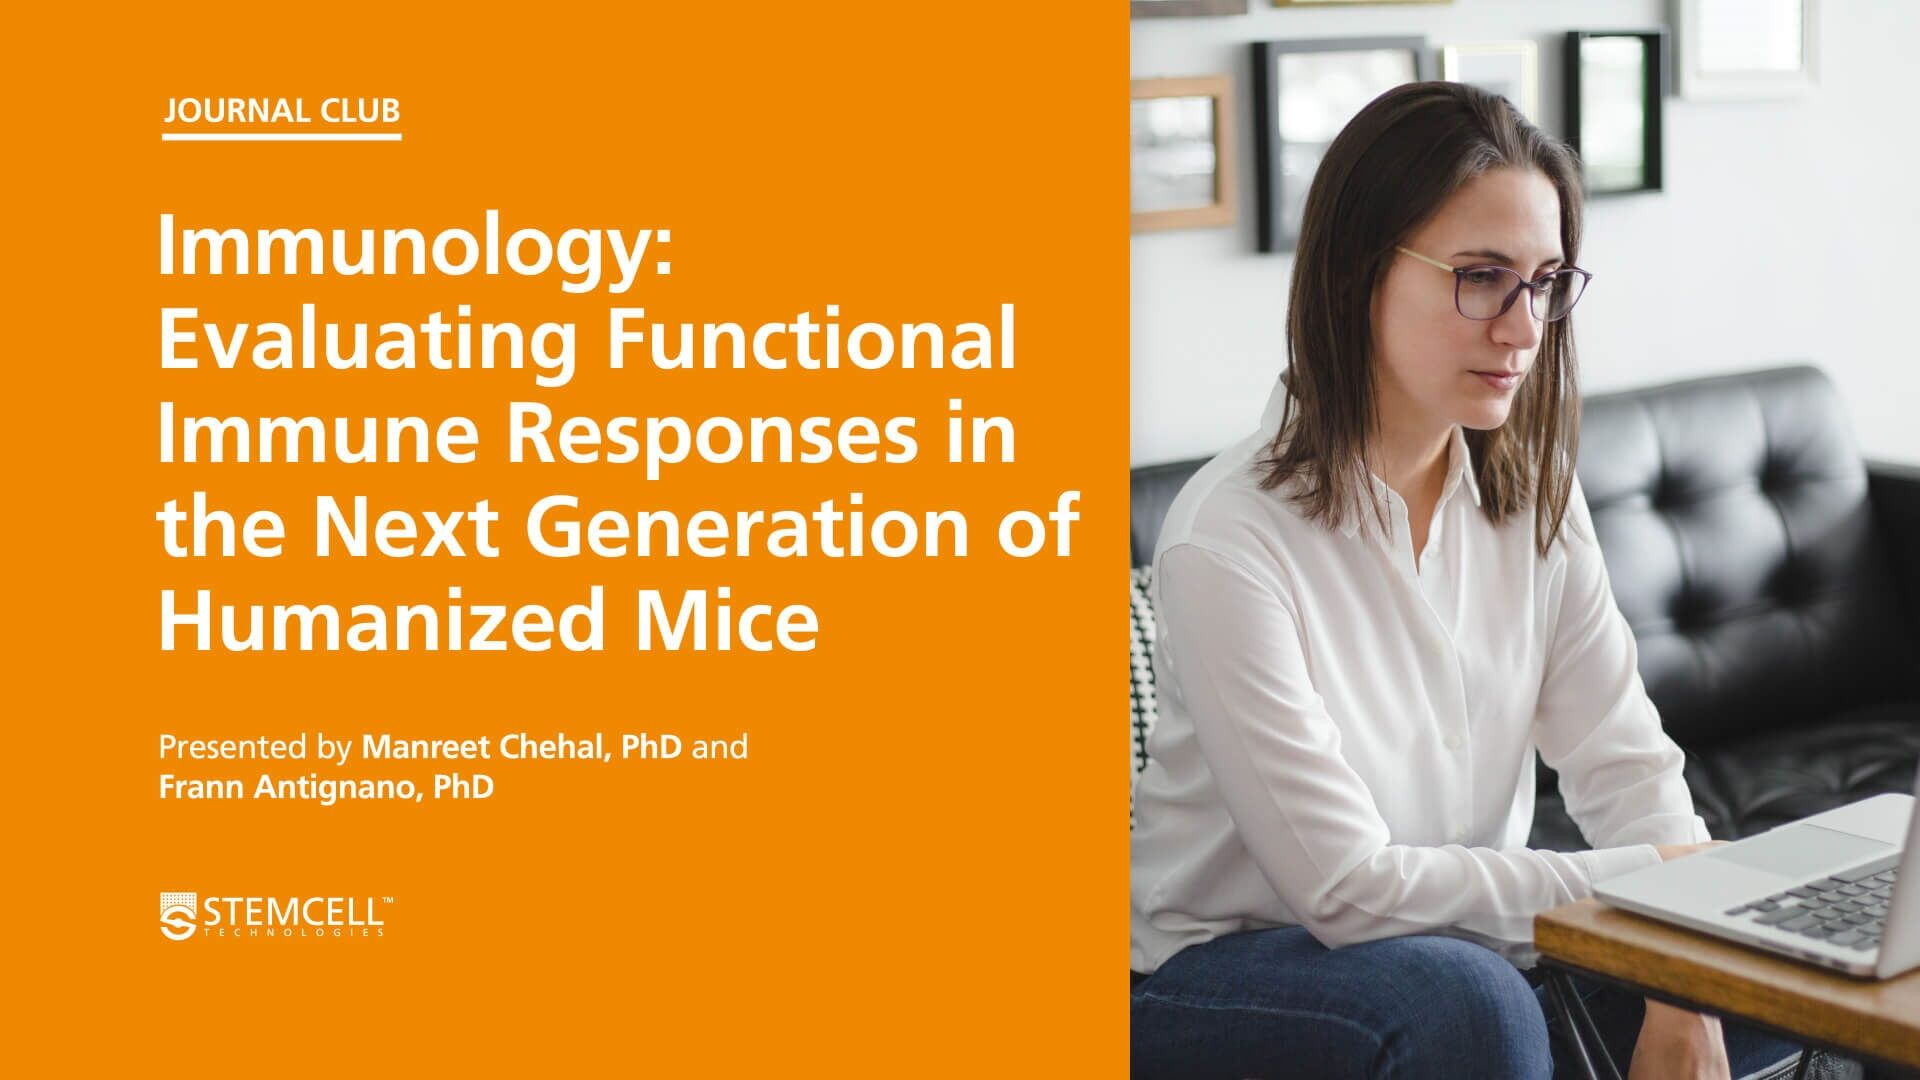 Online Immunology Journal Club: Evaluating Functional Immune Responses in the Next Generation of Humanized Mice